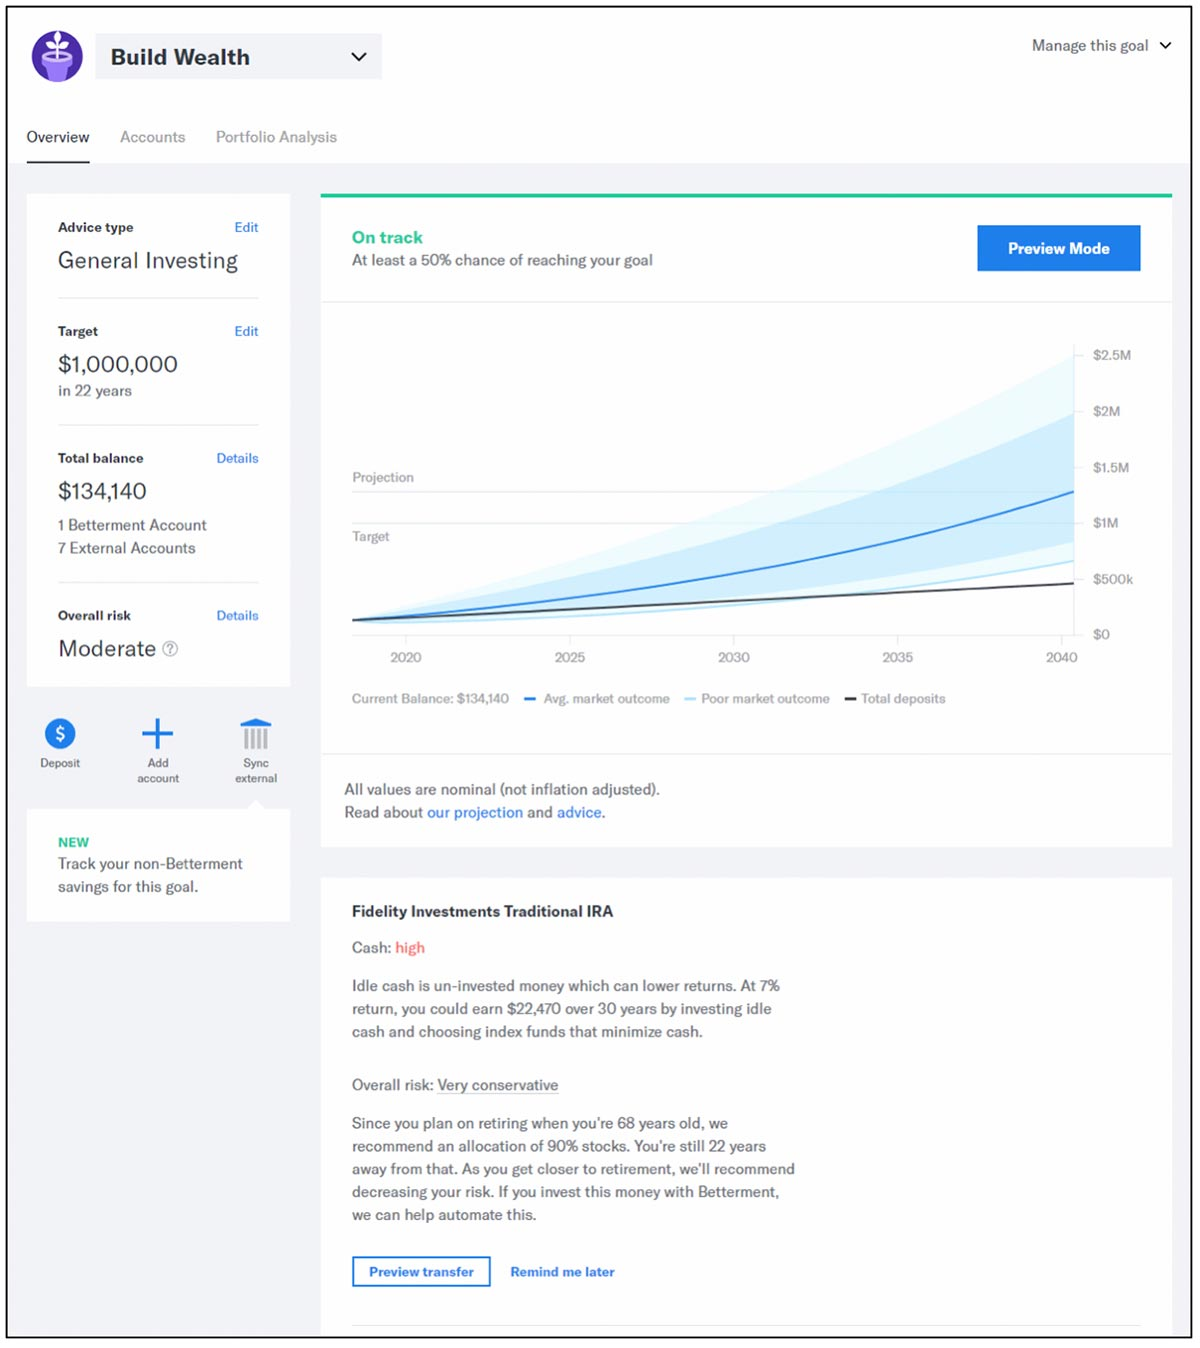 Betterment emerges as a leader in our comparison of aggregation-based financial planning tools